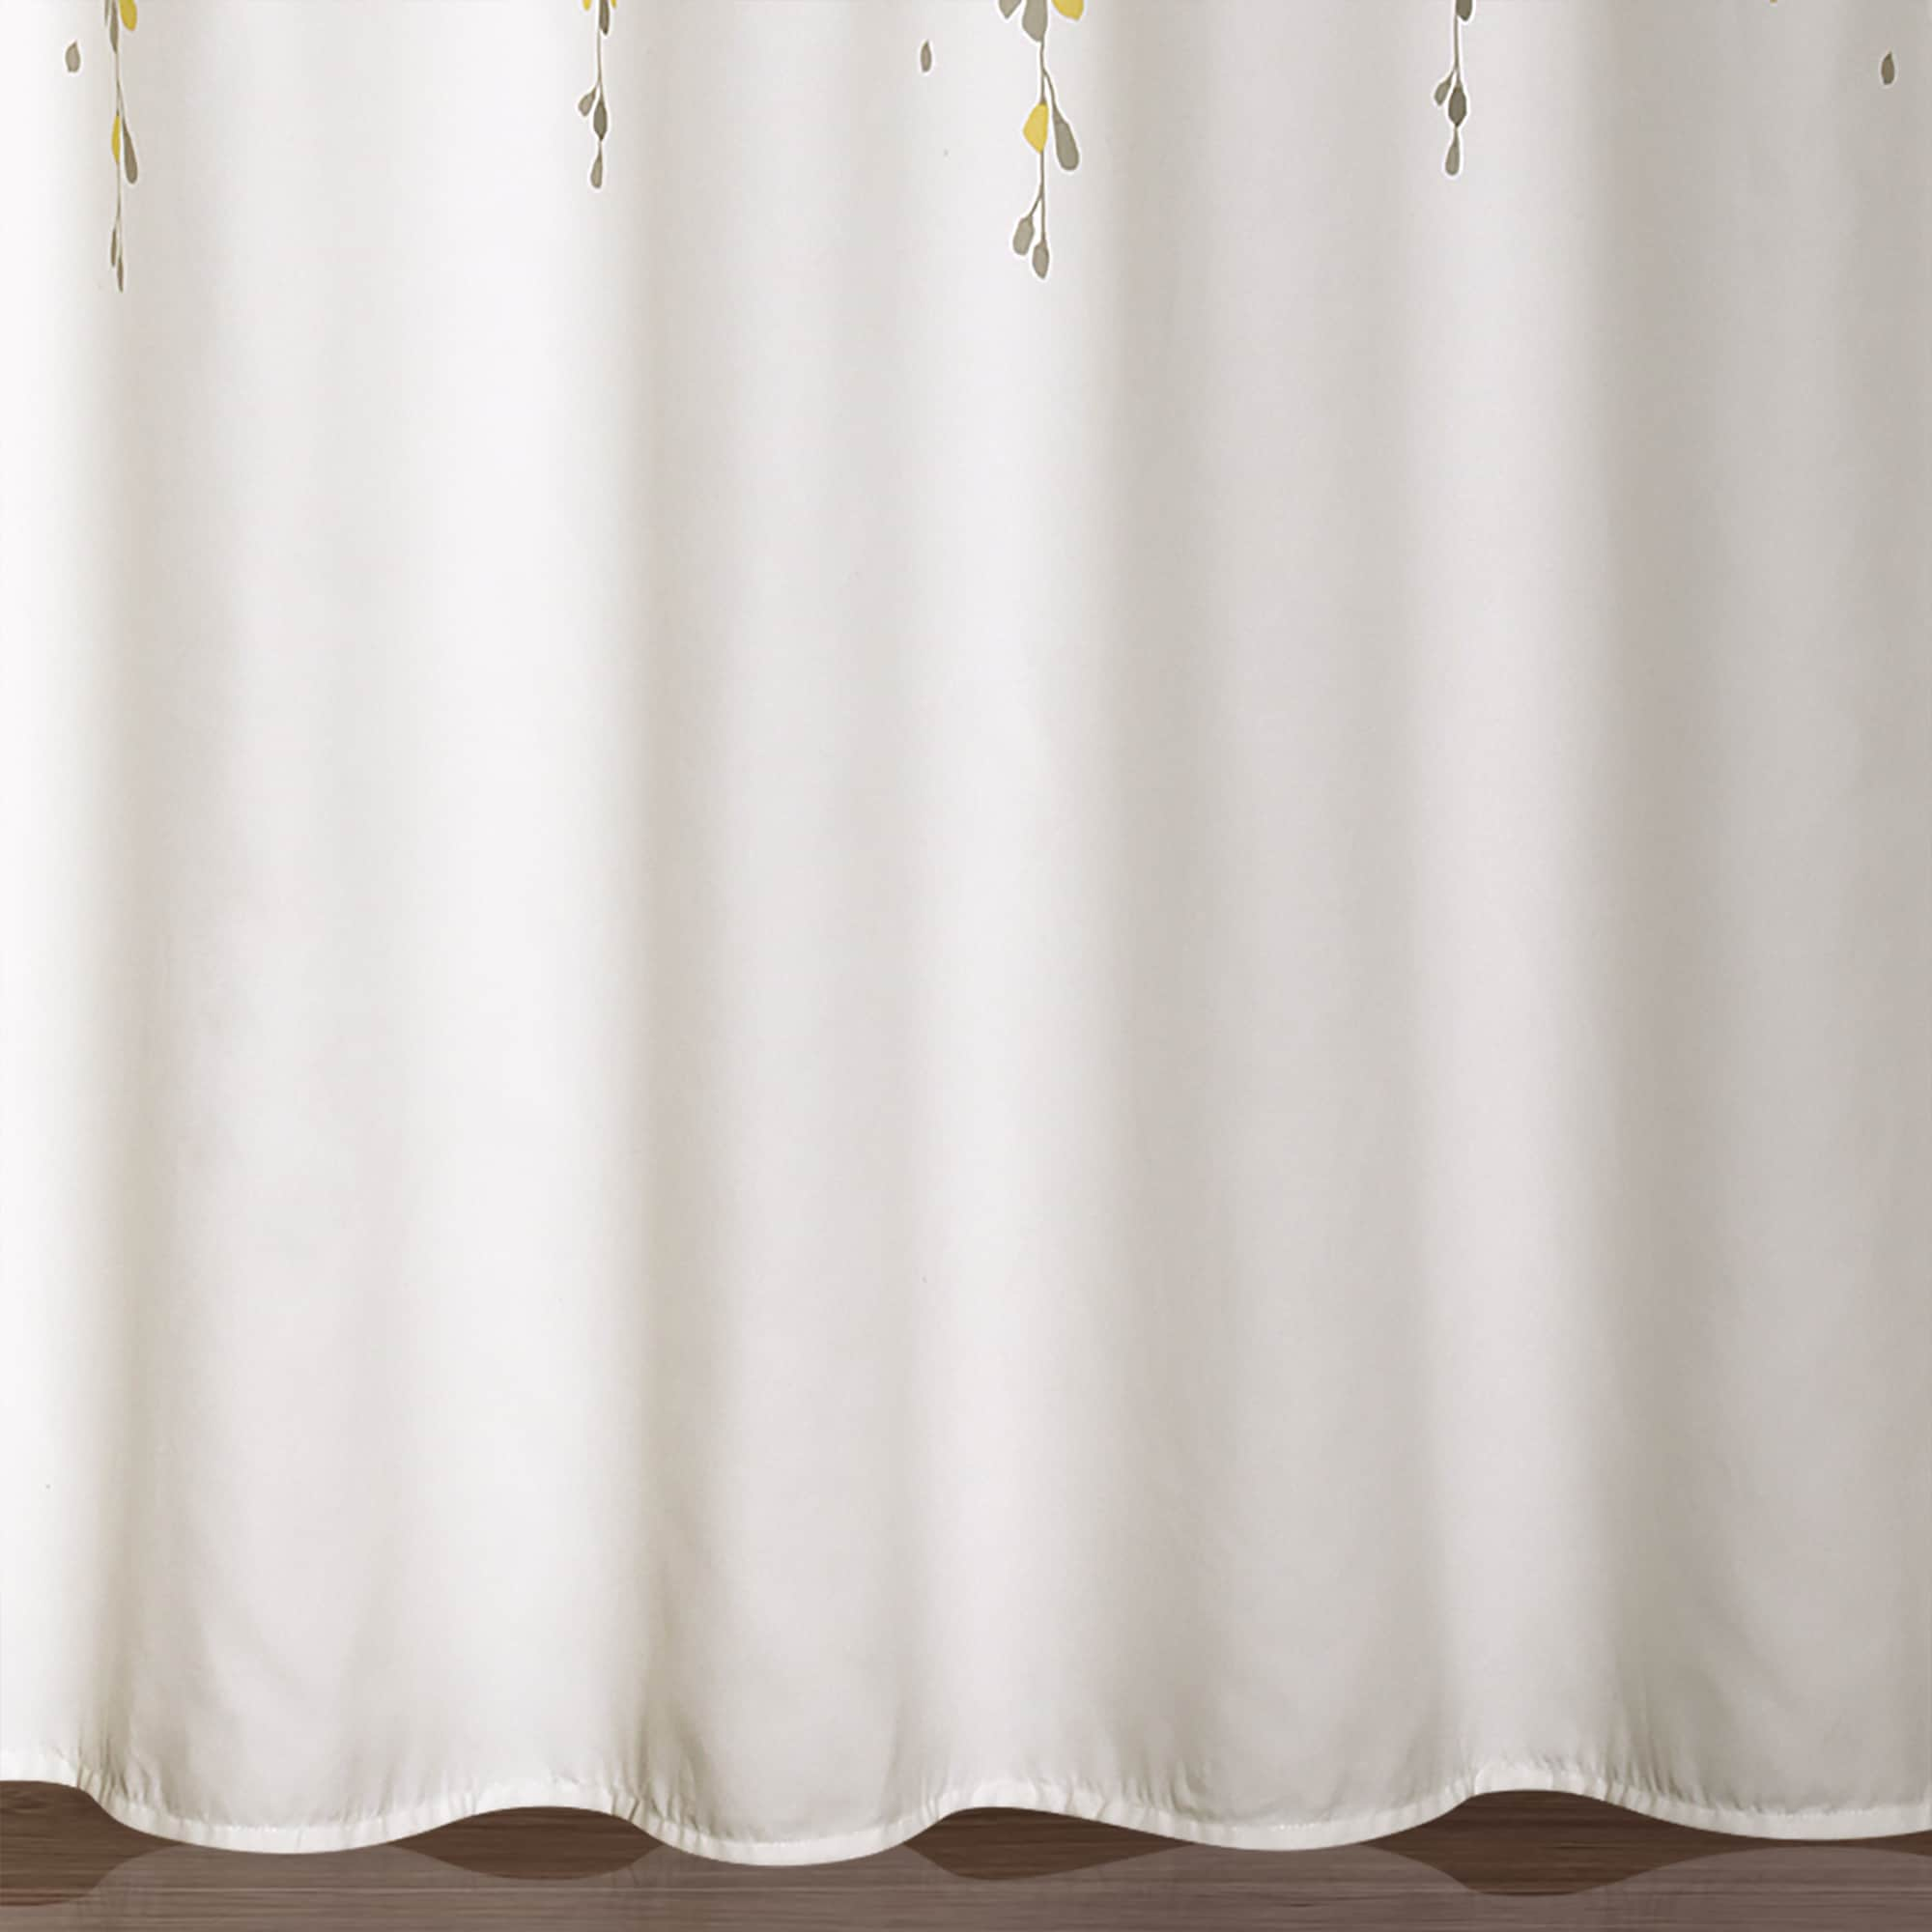 Shop Lush Decor Weeping Flower Shower Curtain